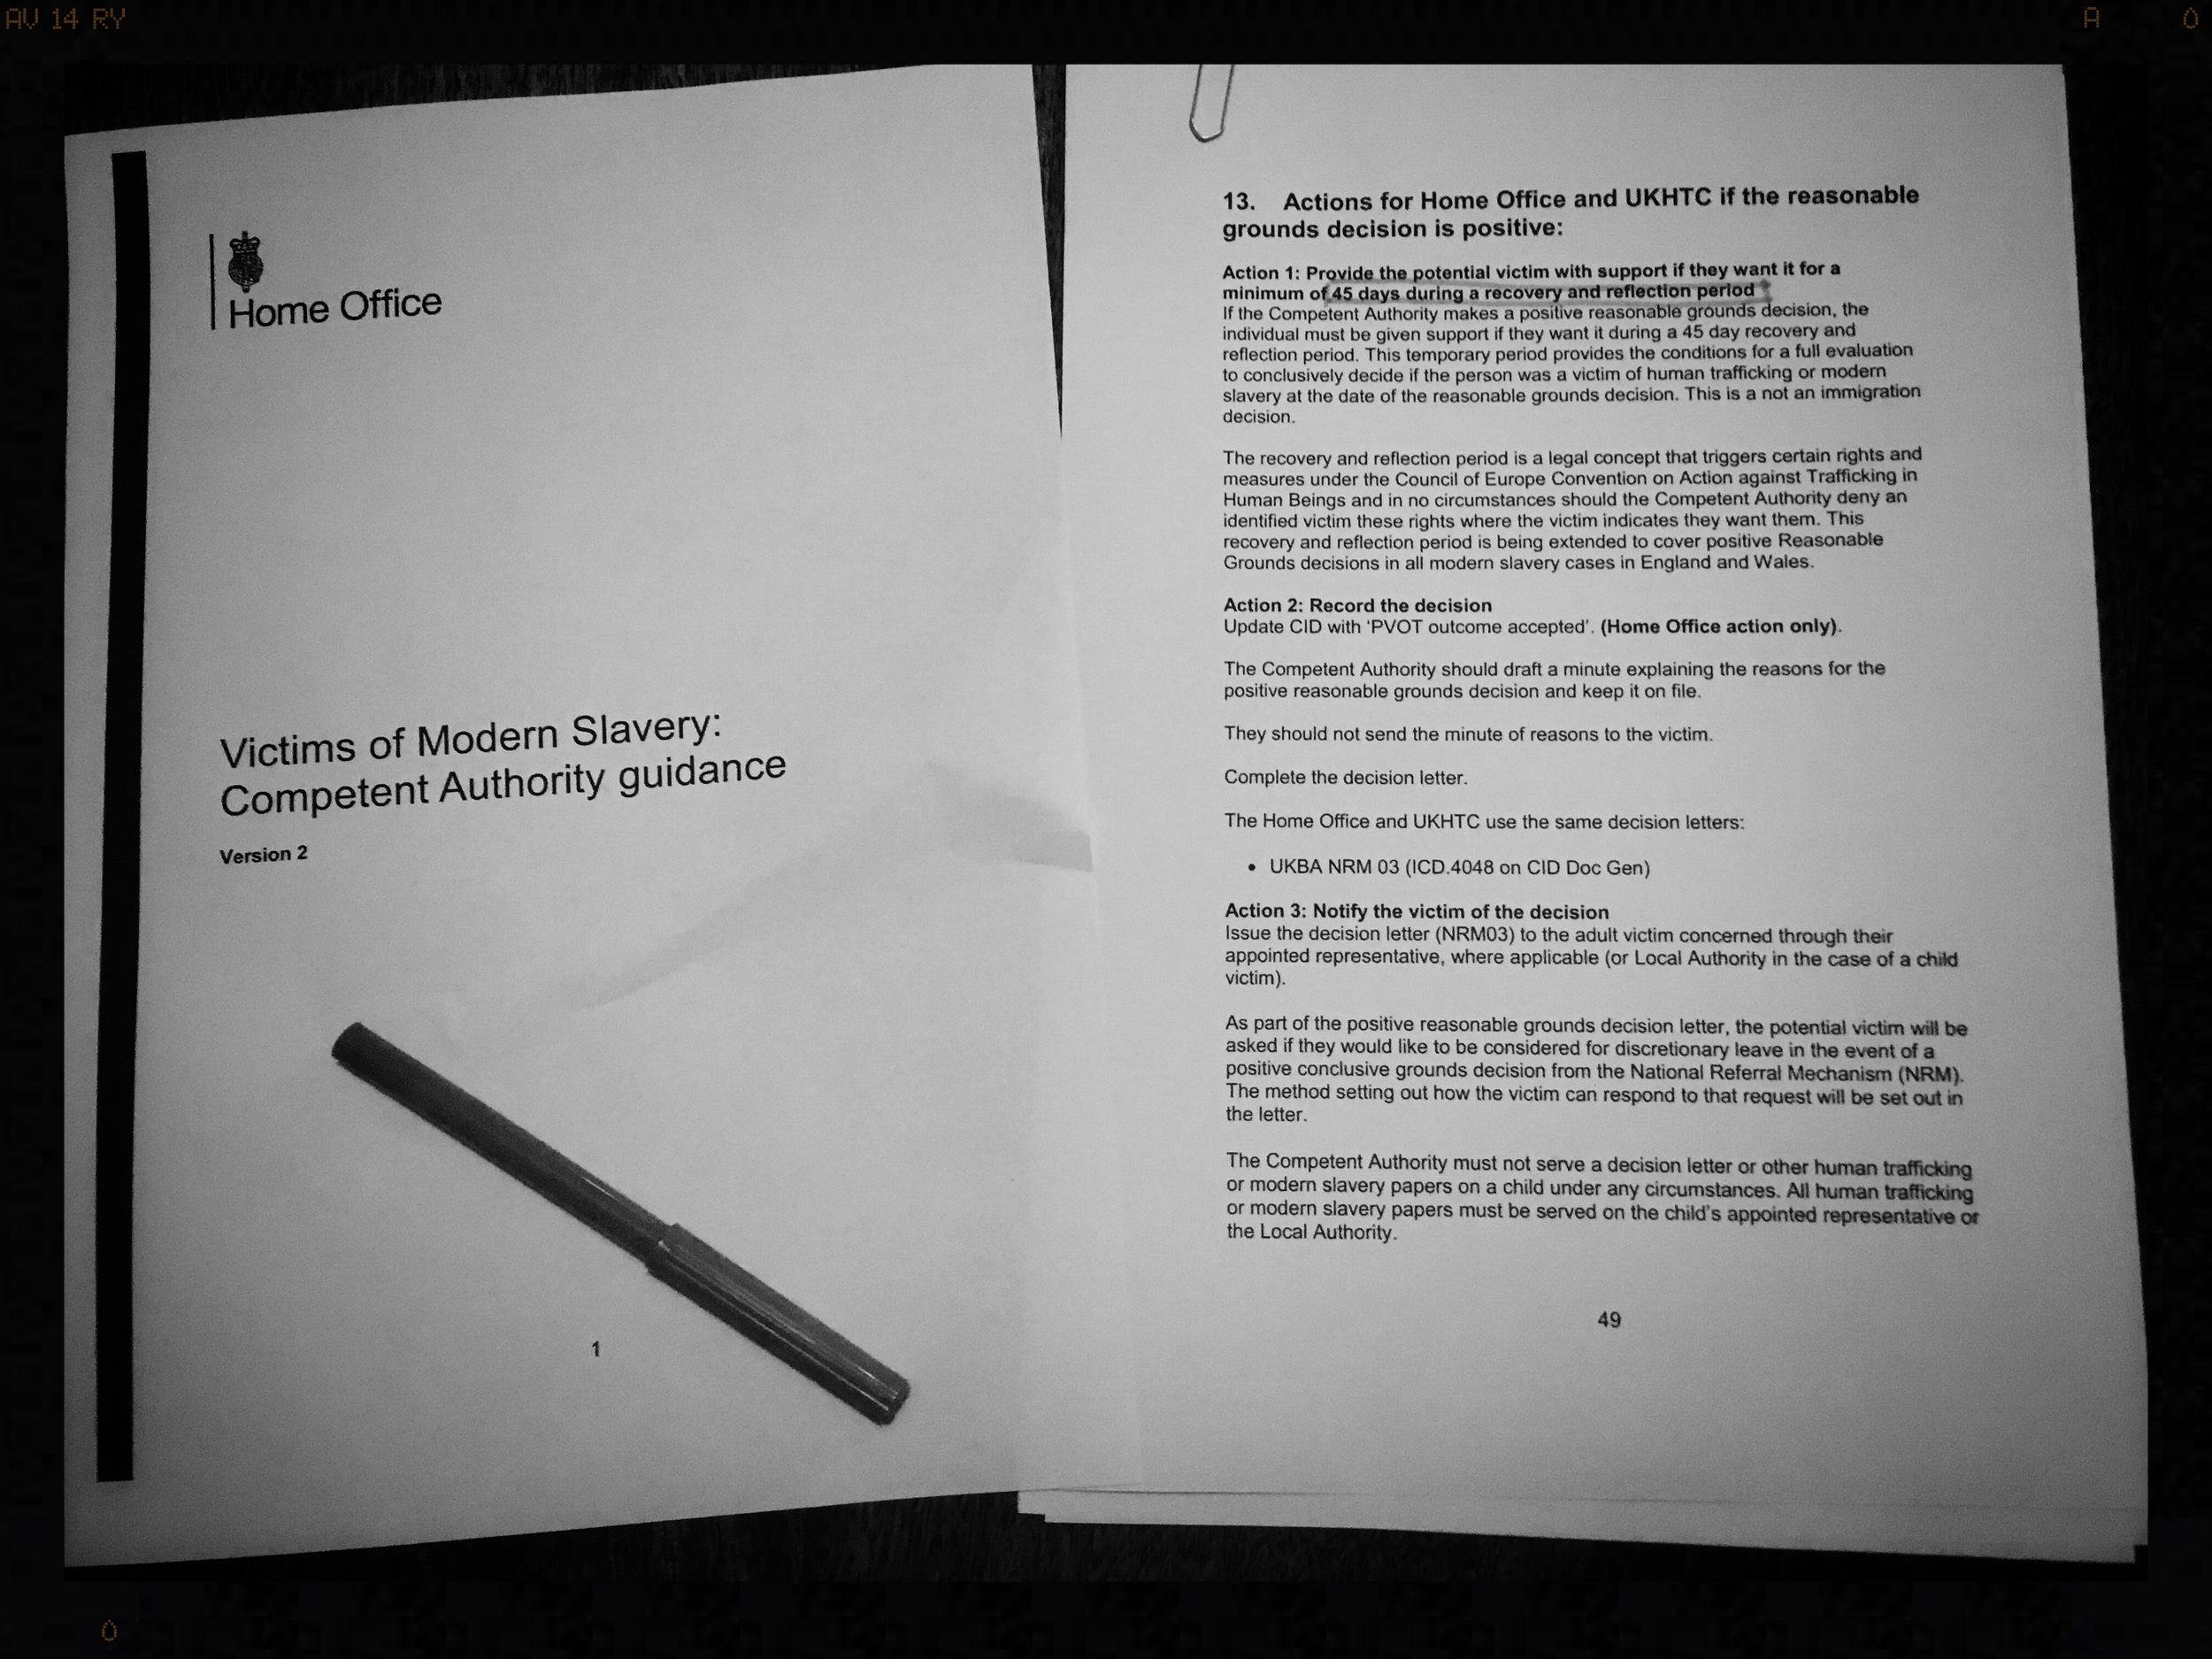 Home Office, Victims of Modern Slavery: Competent Authority guidance